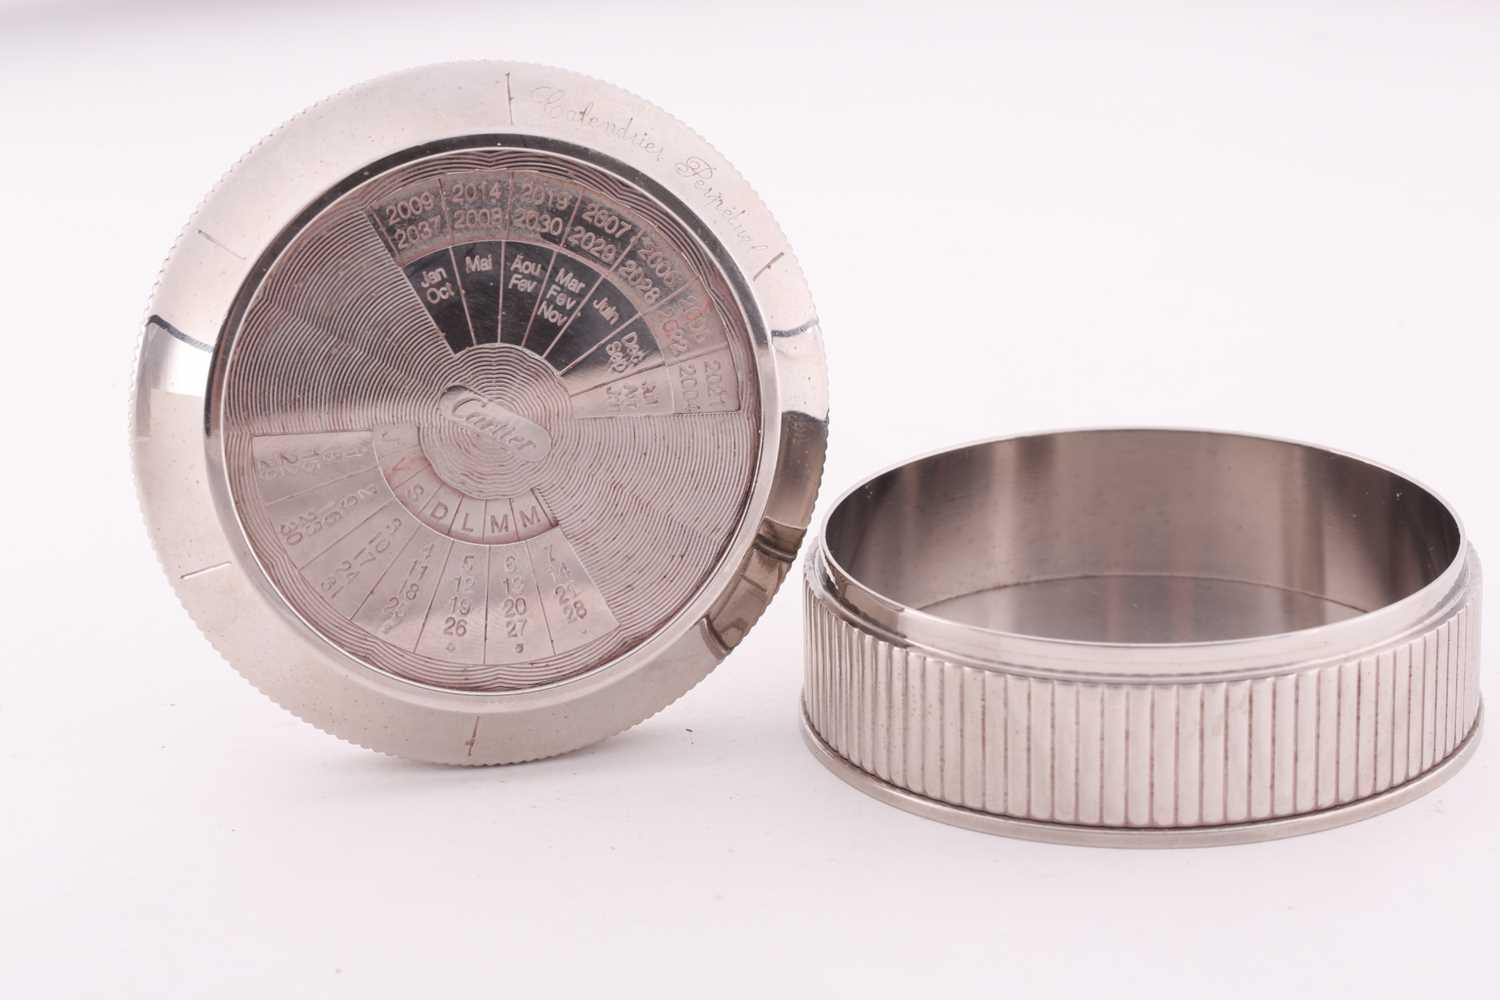 A Cartier chrome desk calender, with adjustable year, month, and date dial to lid, 8 cm diameter, - Image 4 of 5